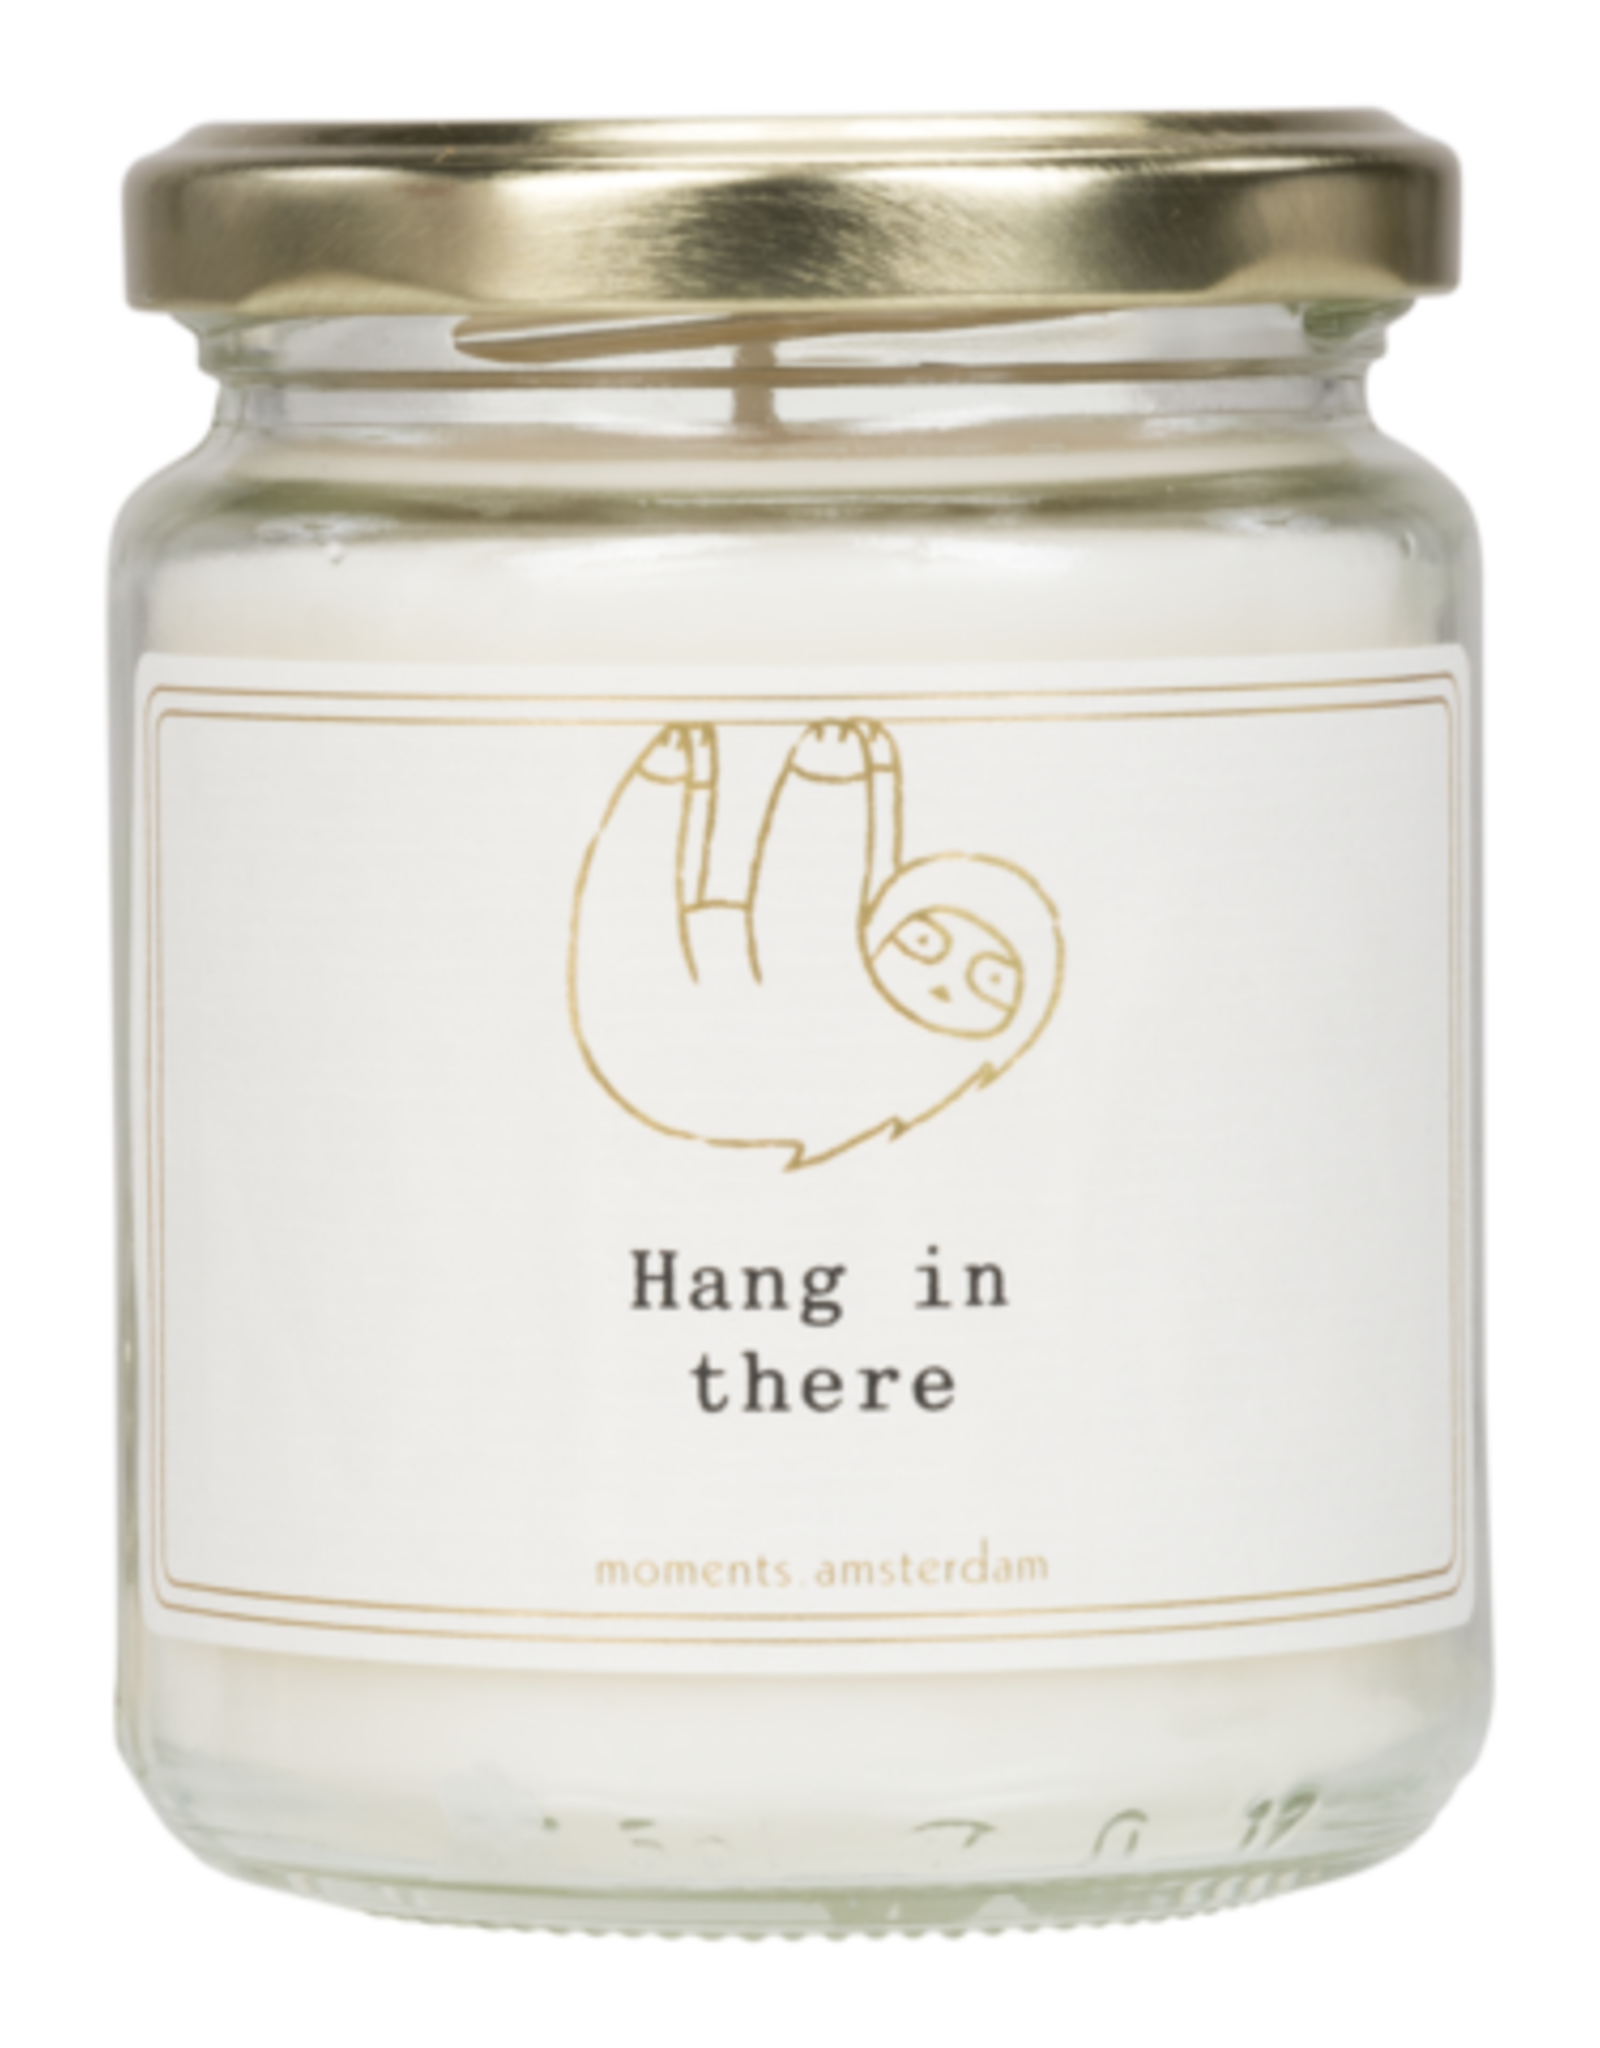 Moments of light Moments - Little Candle - Hang in there